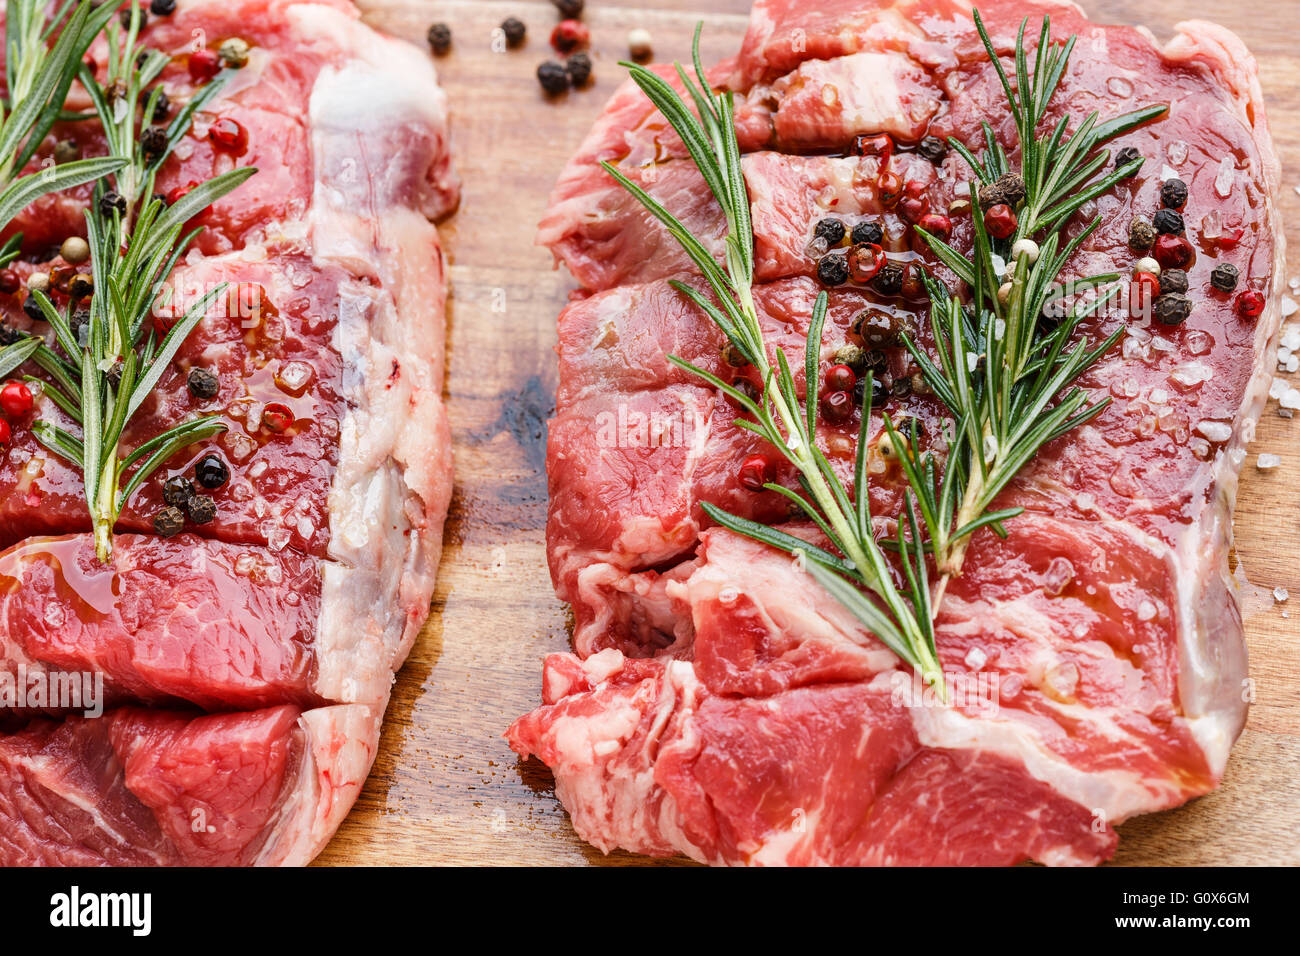 Raw Beef Steaks, salt, pepper, rosemary  on cutting board - Stock Image